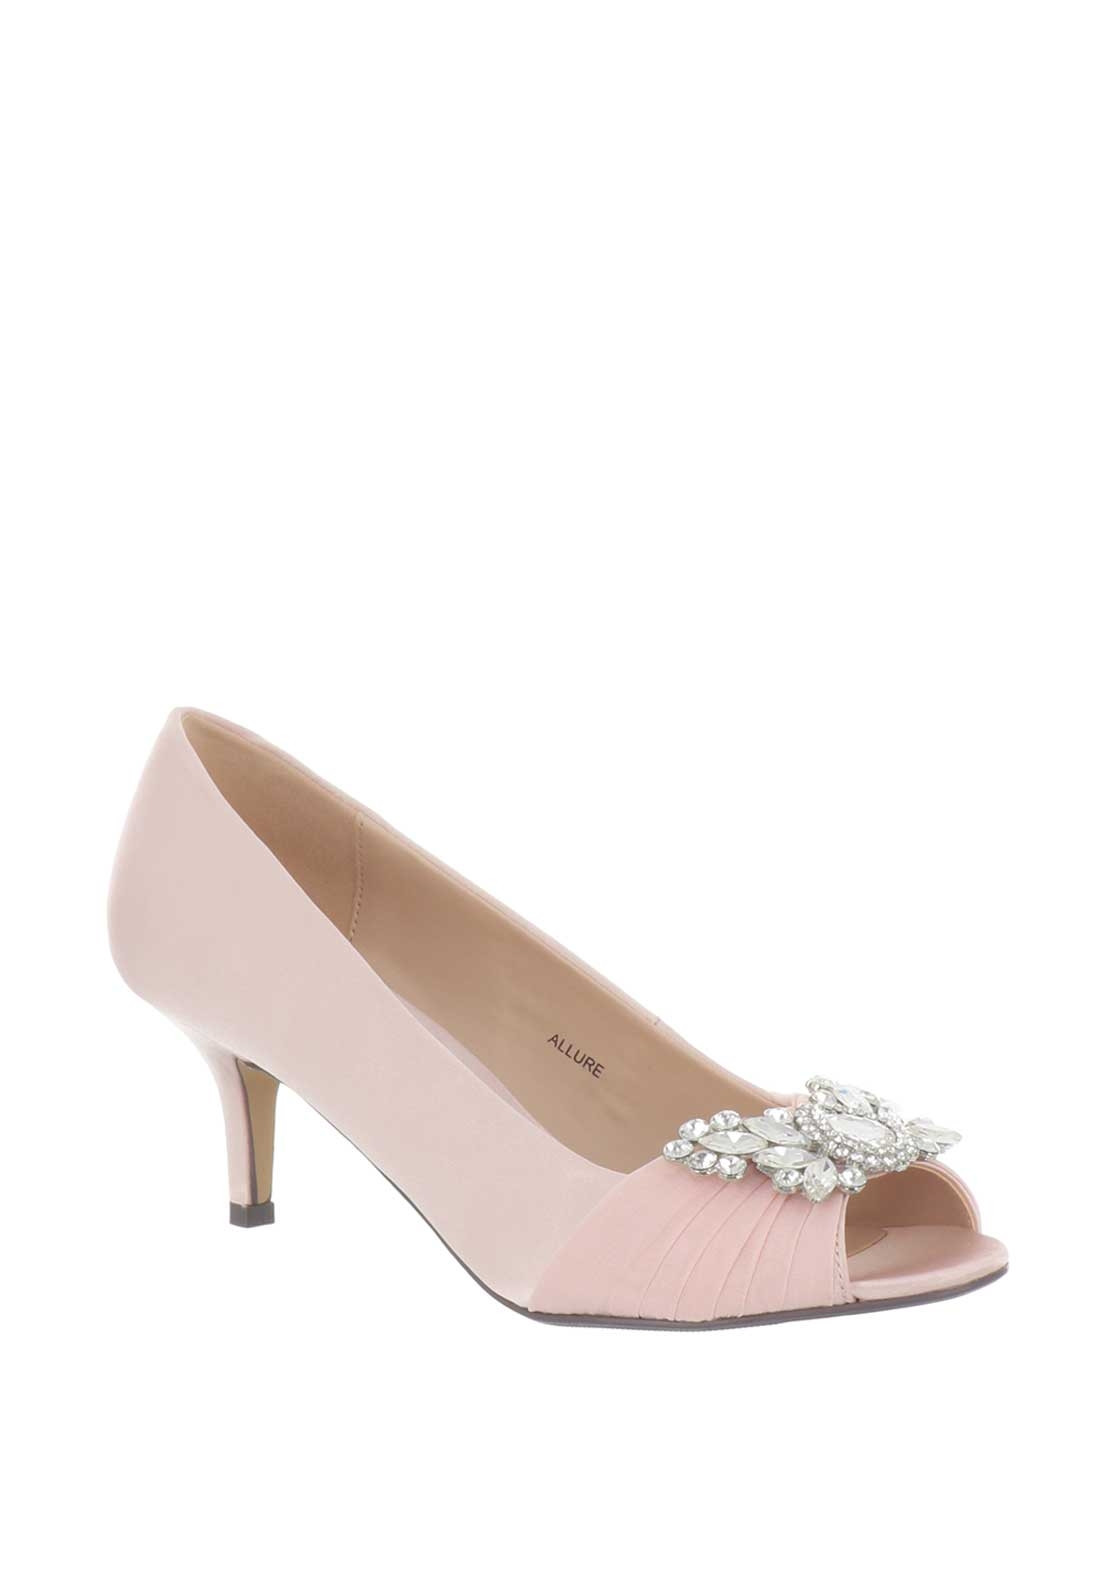 22517782822 Lunar Allure Diamante Peep Toe Heeled Shoes, Pink